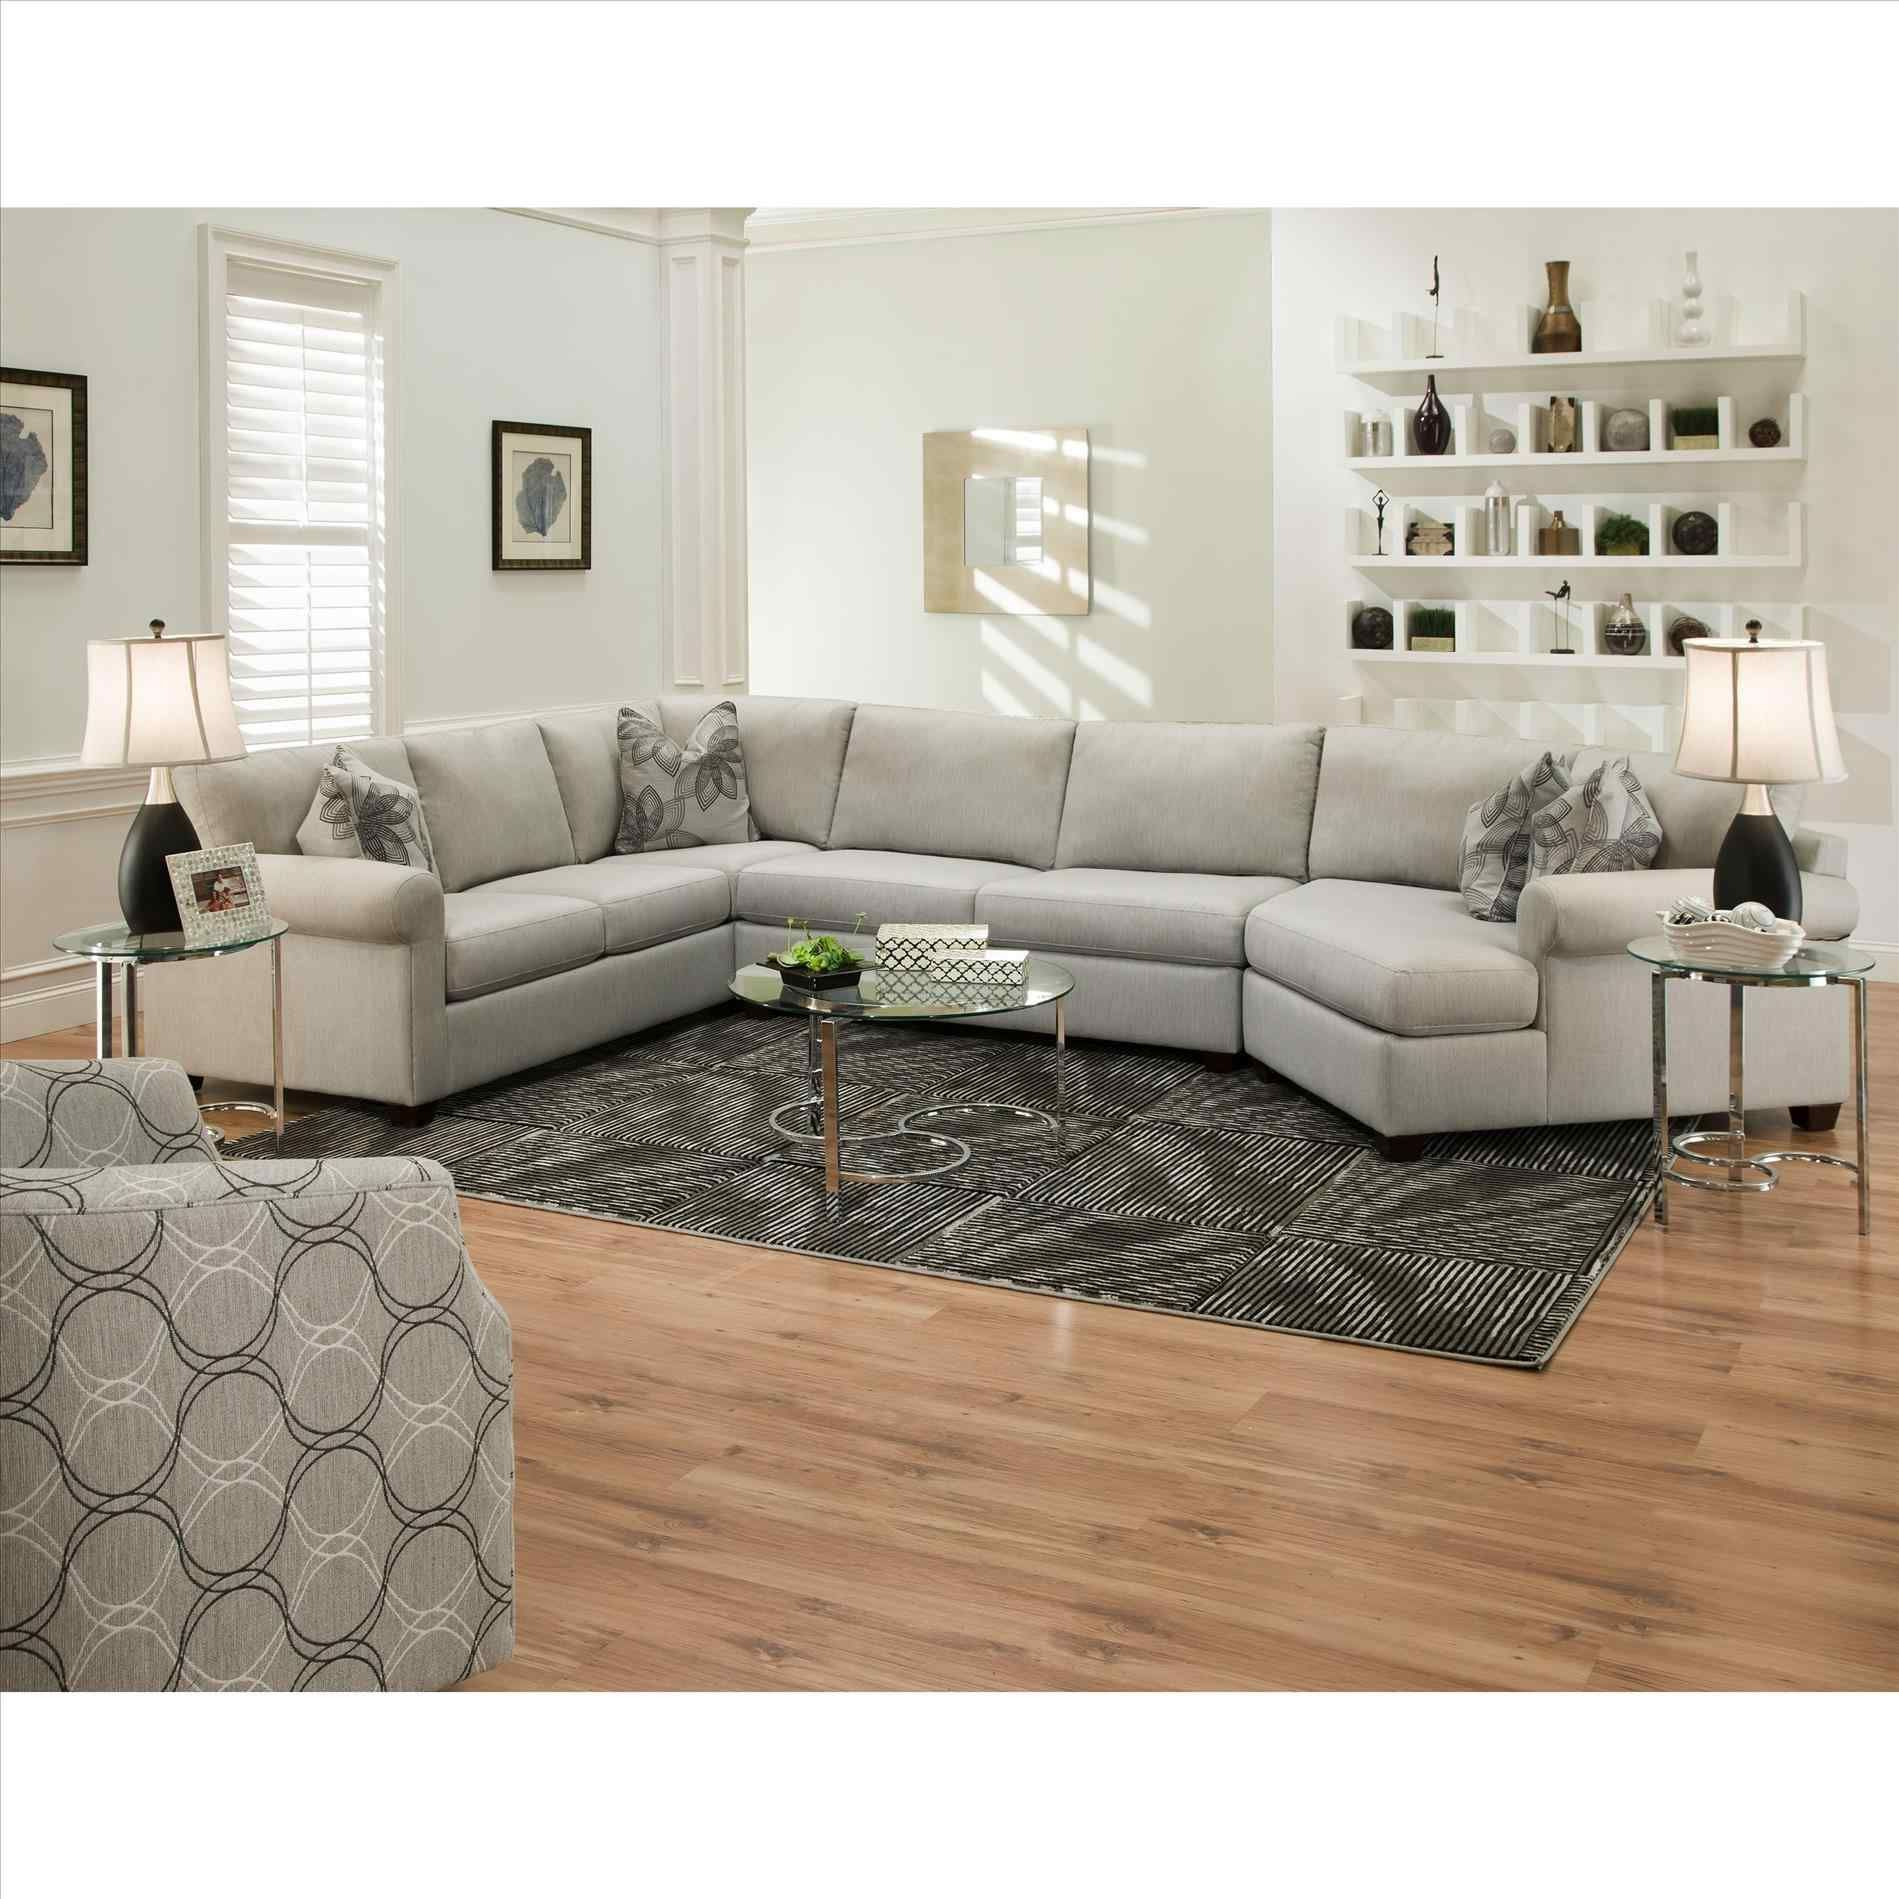 Great Collection From Southern Motion Furniture American Made Sectional Sofas Sofa